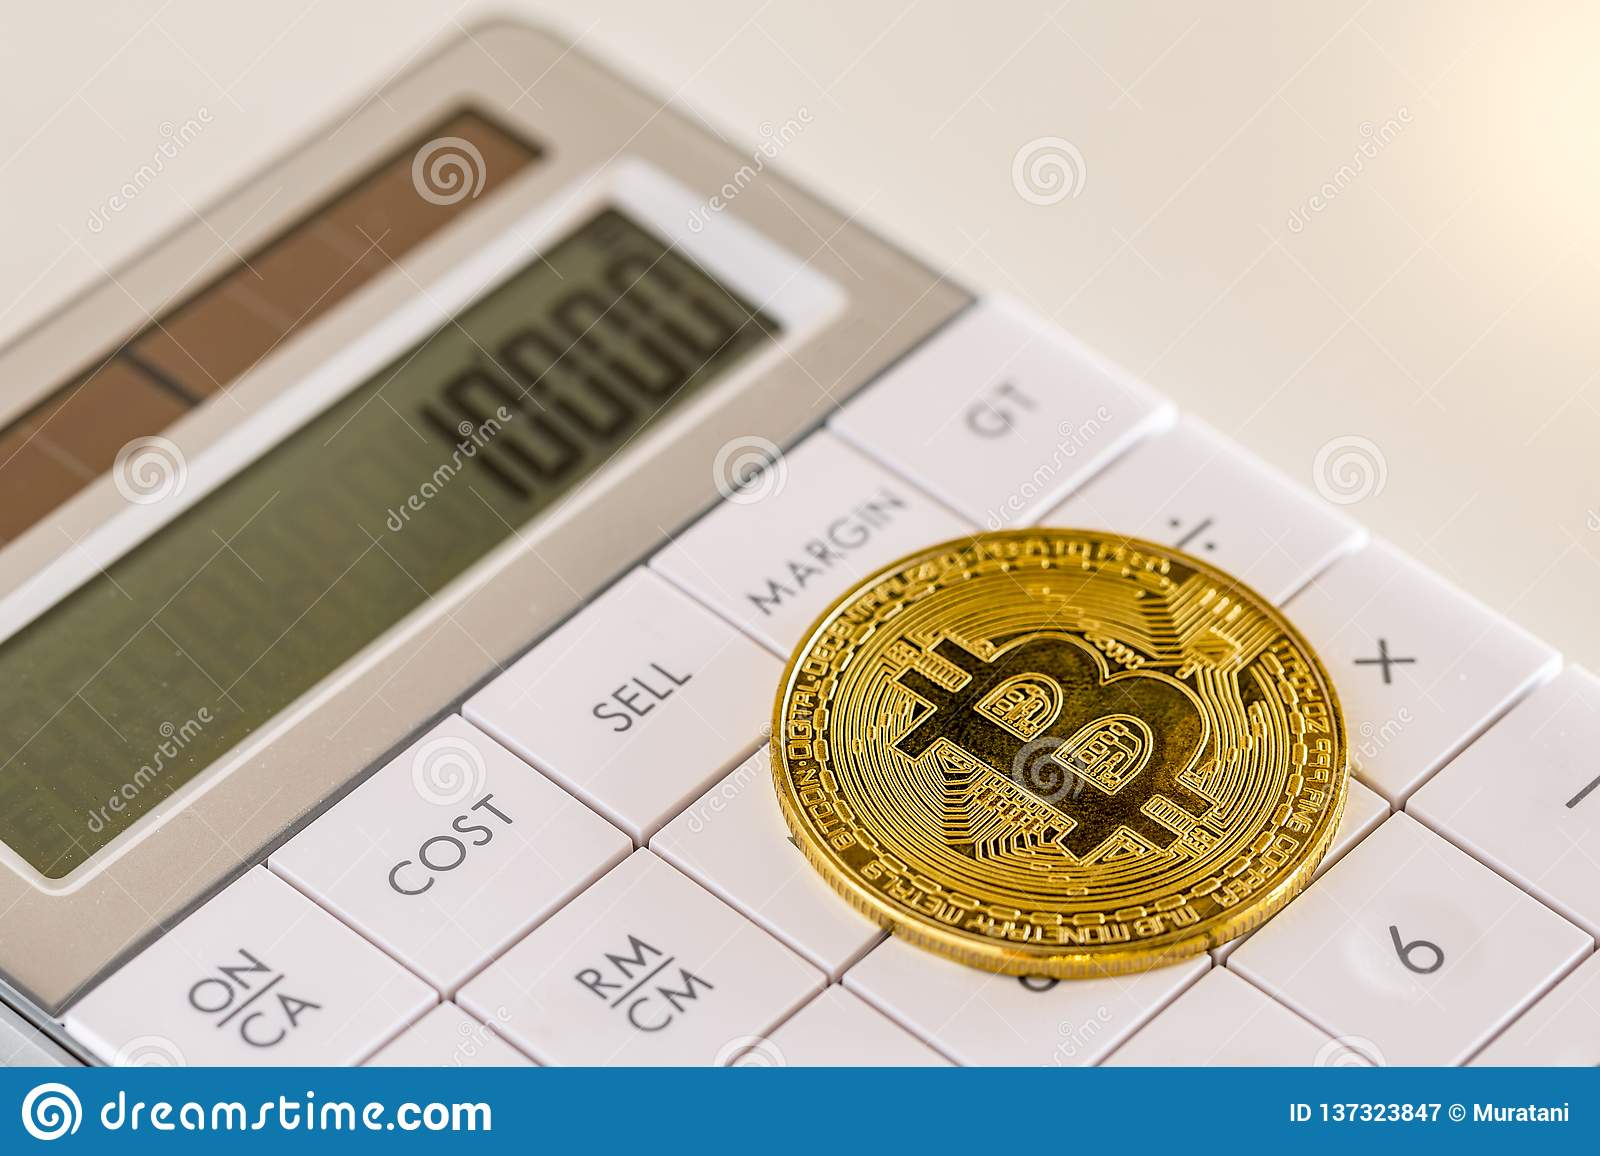 Golden Bitcoin On White Calculator Close-up Image Stock